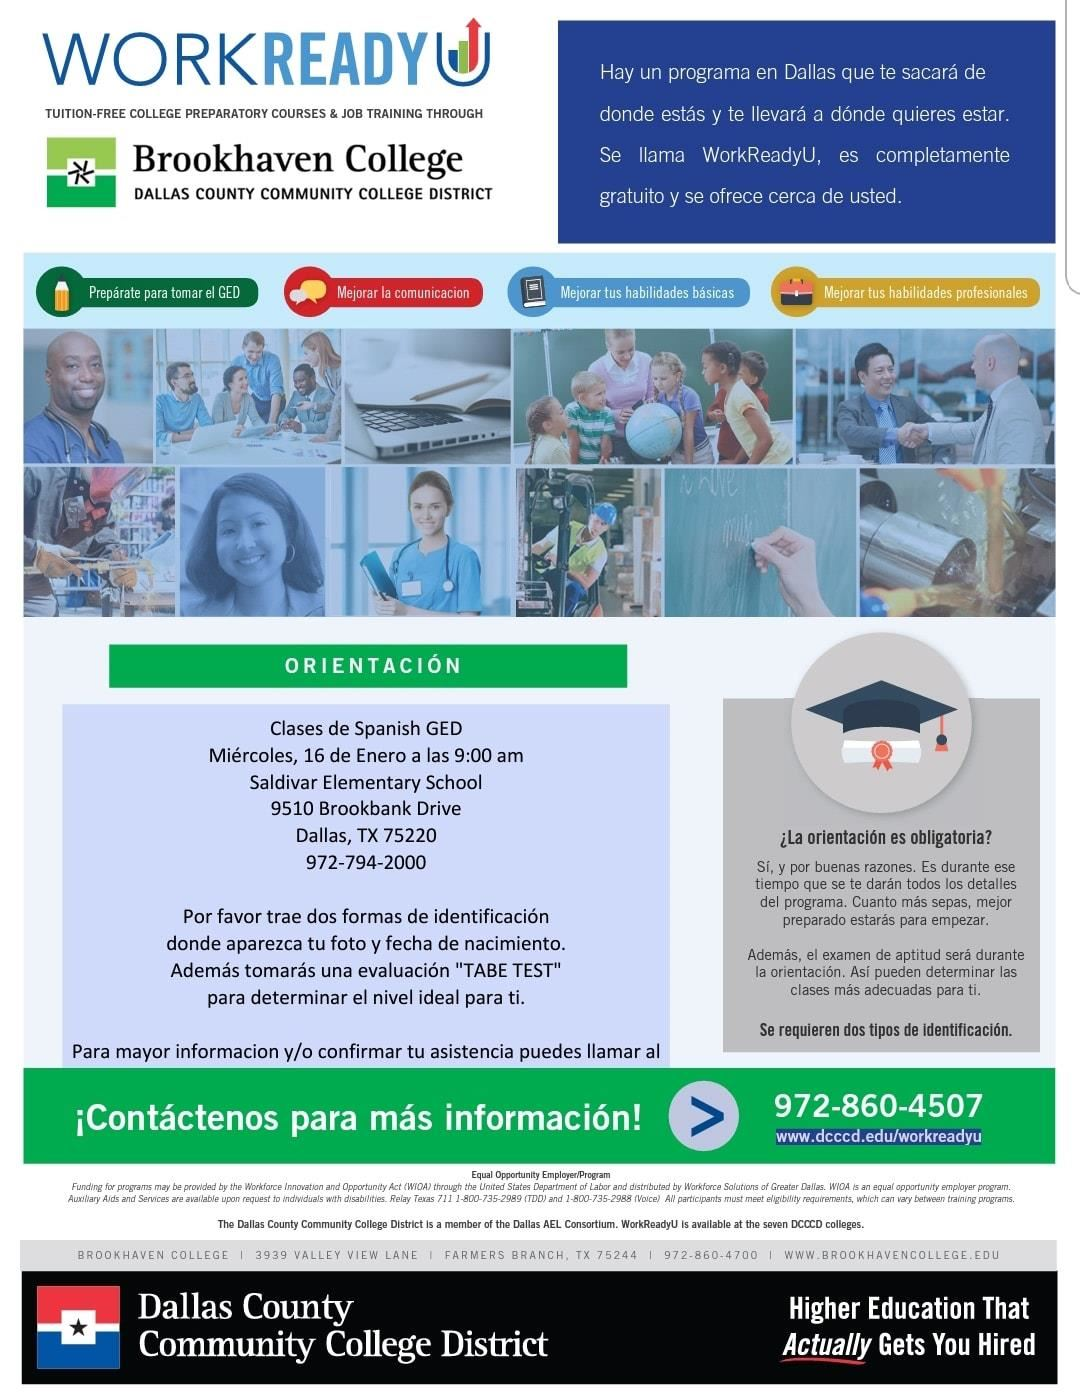 Brookhaven College GED Classes in Spanish for Adults